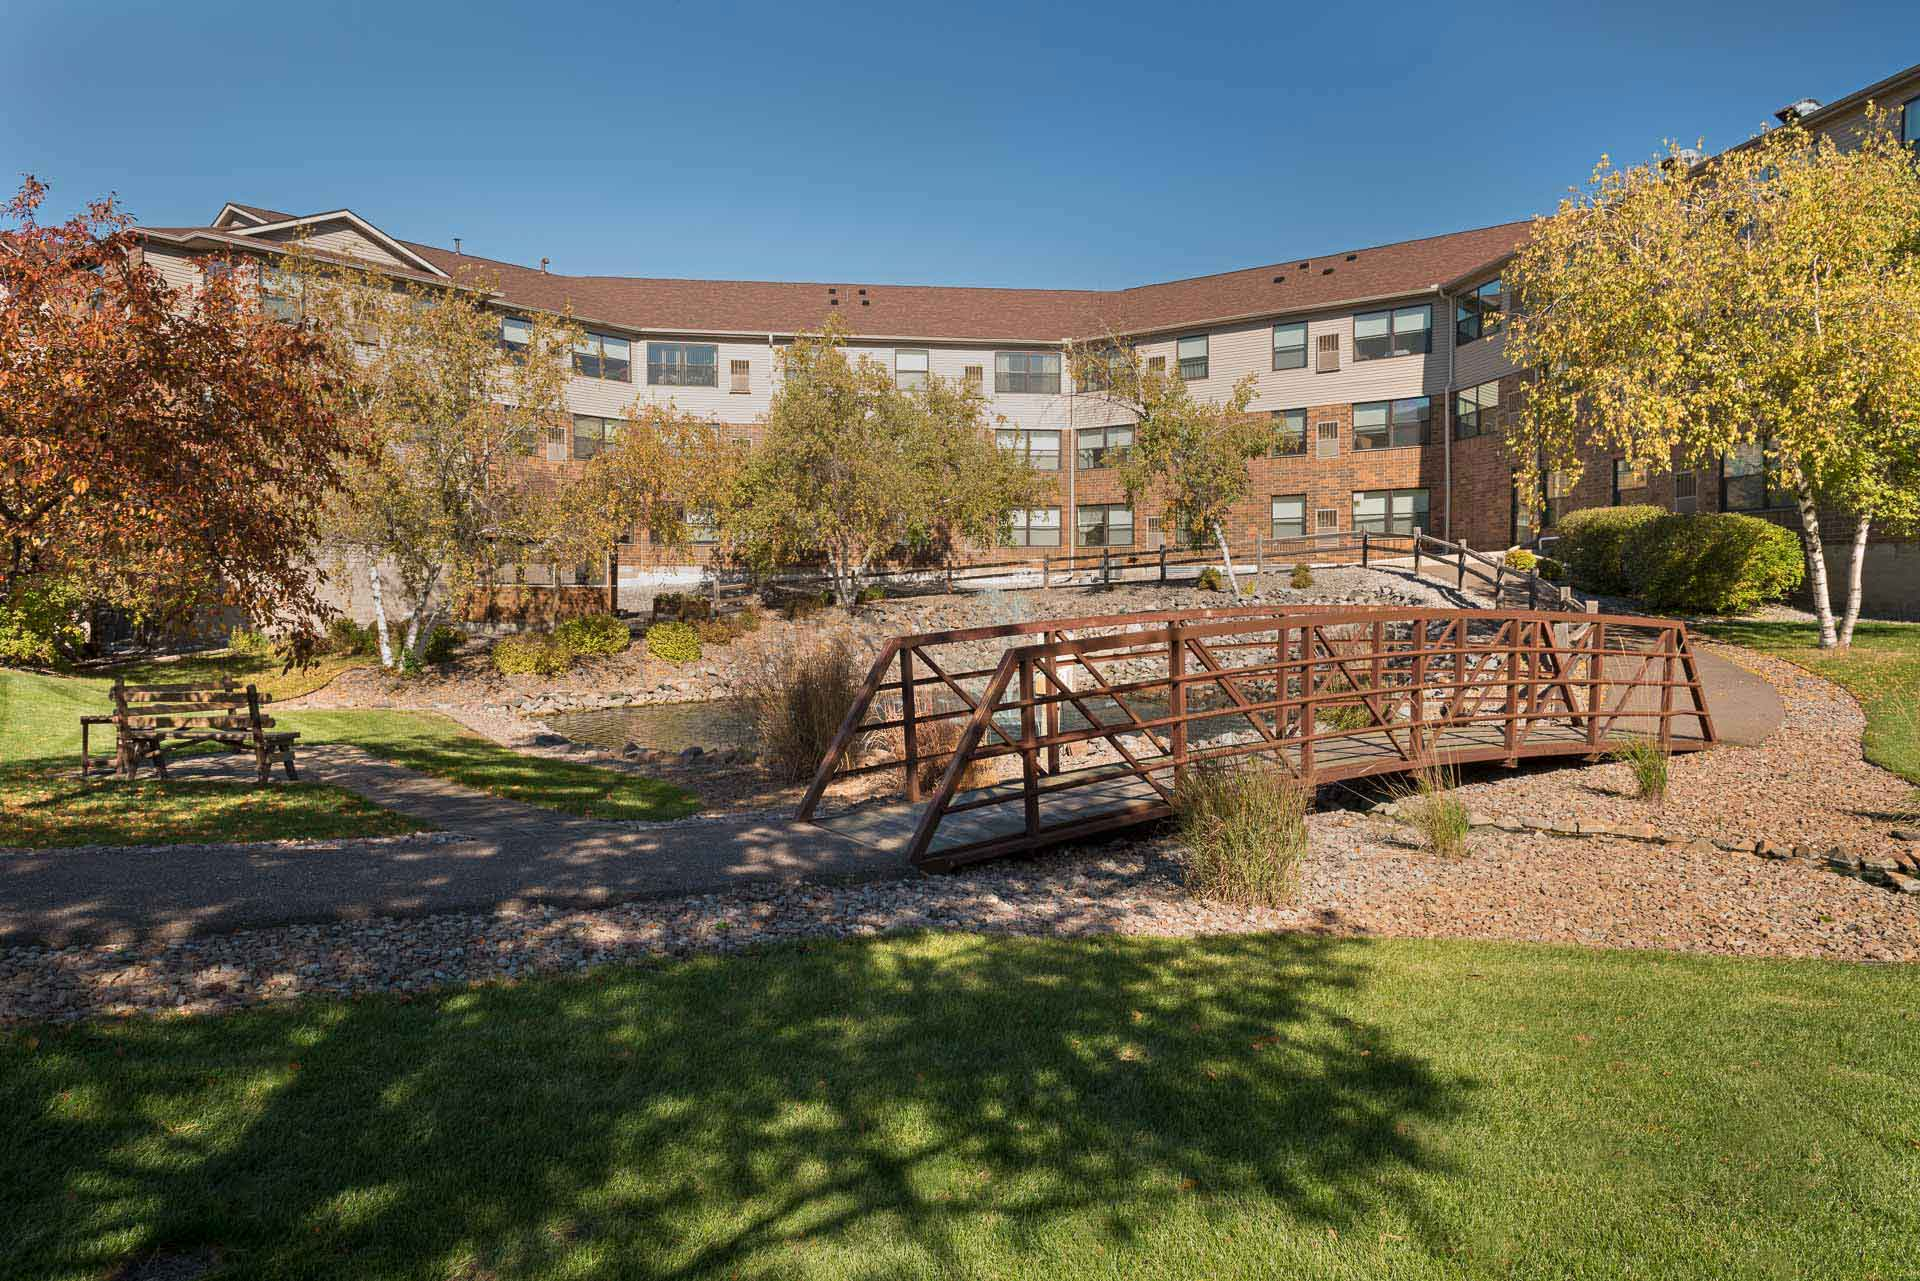 Back of Epiphany Senior Housing building with a walking path and bridge